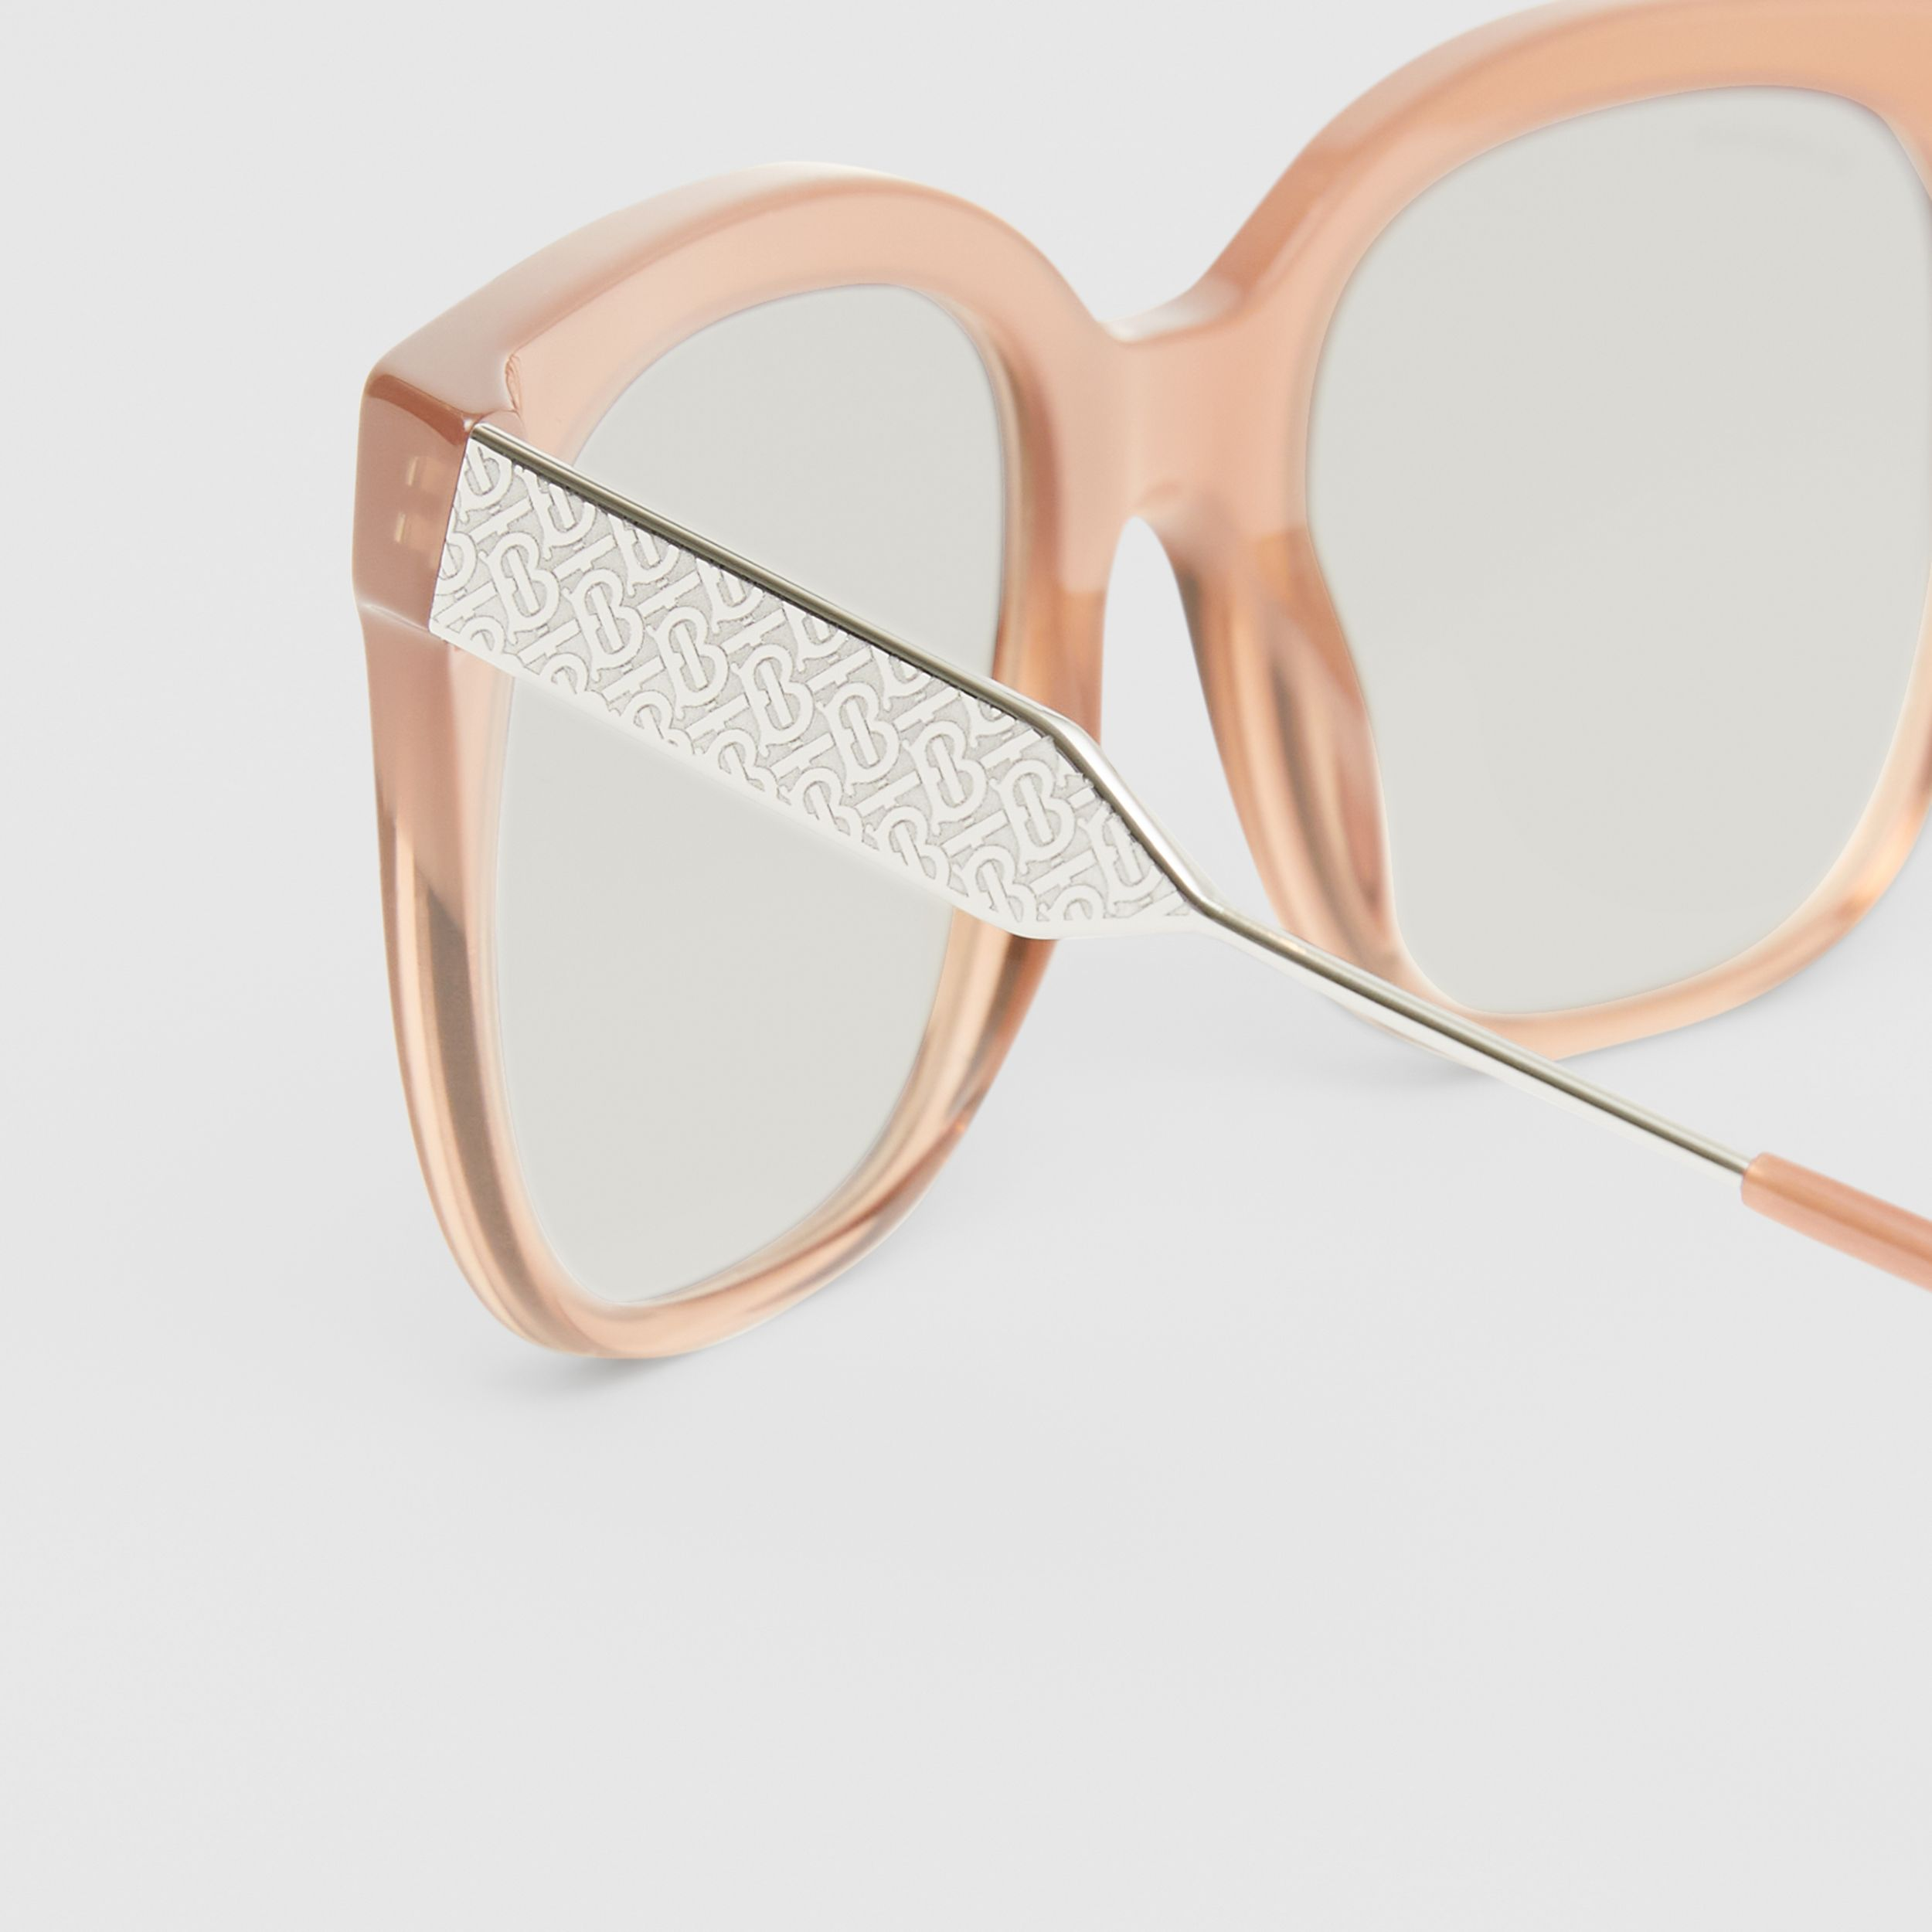 Butterfly Frame Sunglasses in Nude Pink - Women | Burberry - 2